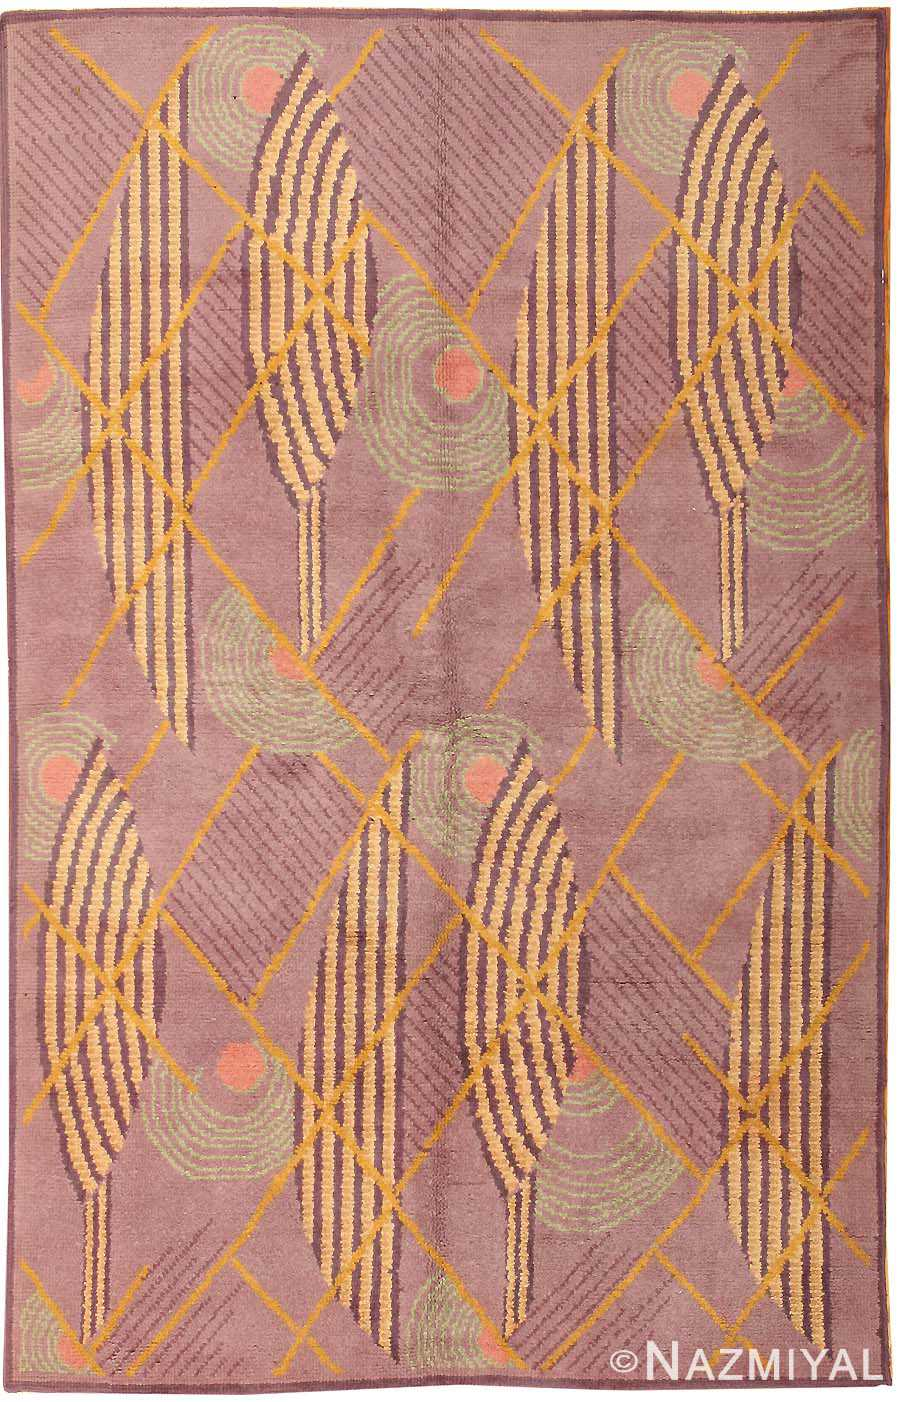 Fabulous French Art Deco Rug | Art Deco Rugs | Art Deco French Rug 40750 MD75